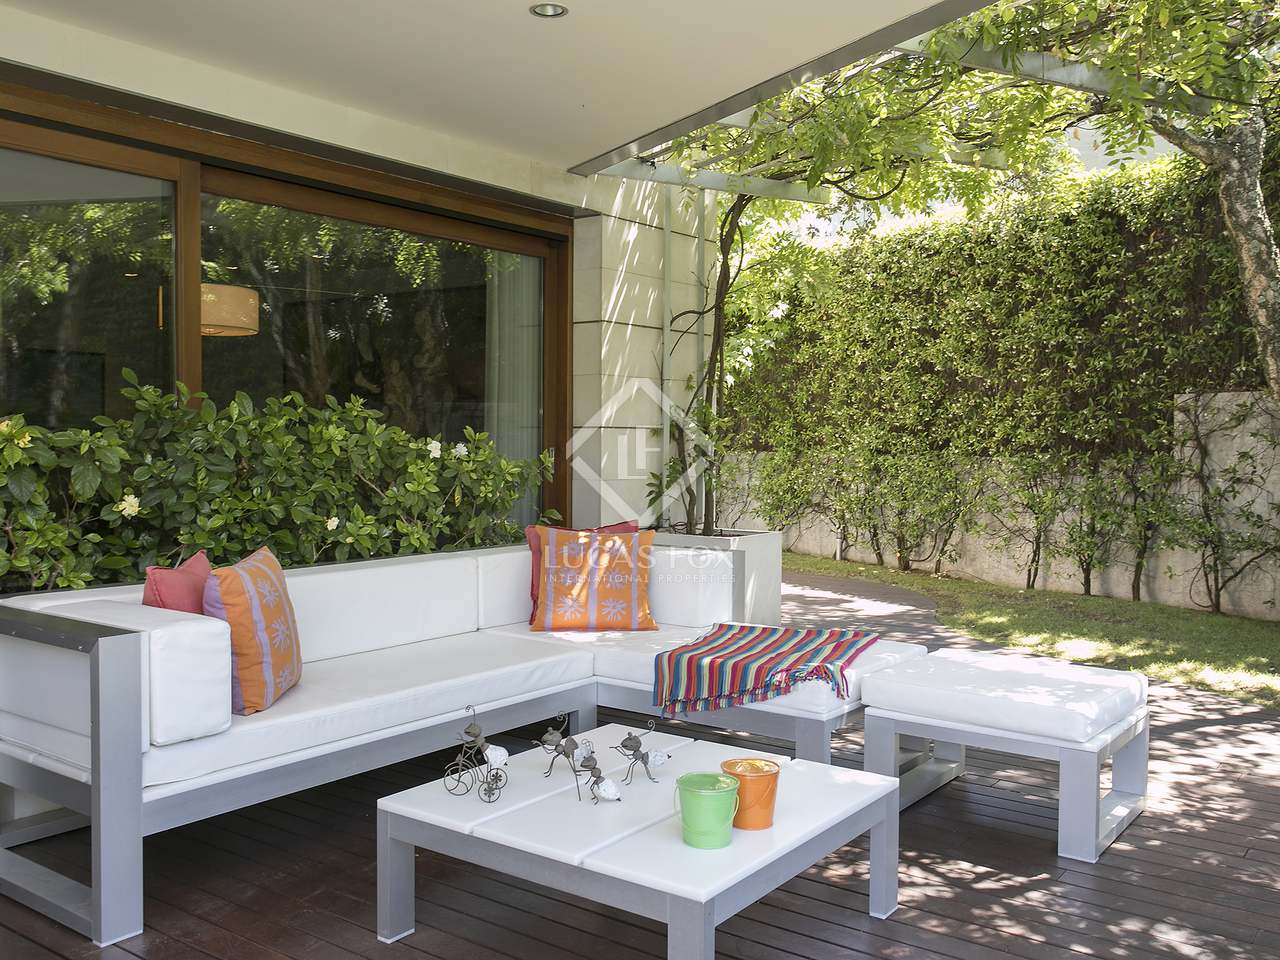 459m Villa With 49m Terrace For Sale In Sant Cugat # Muebles Jardin Sant Cugat